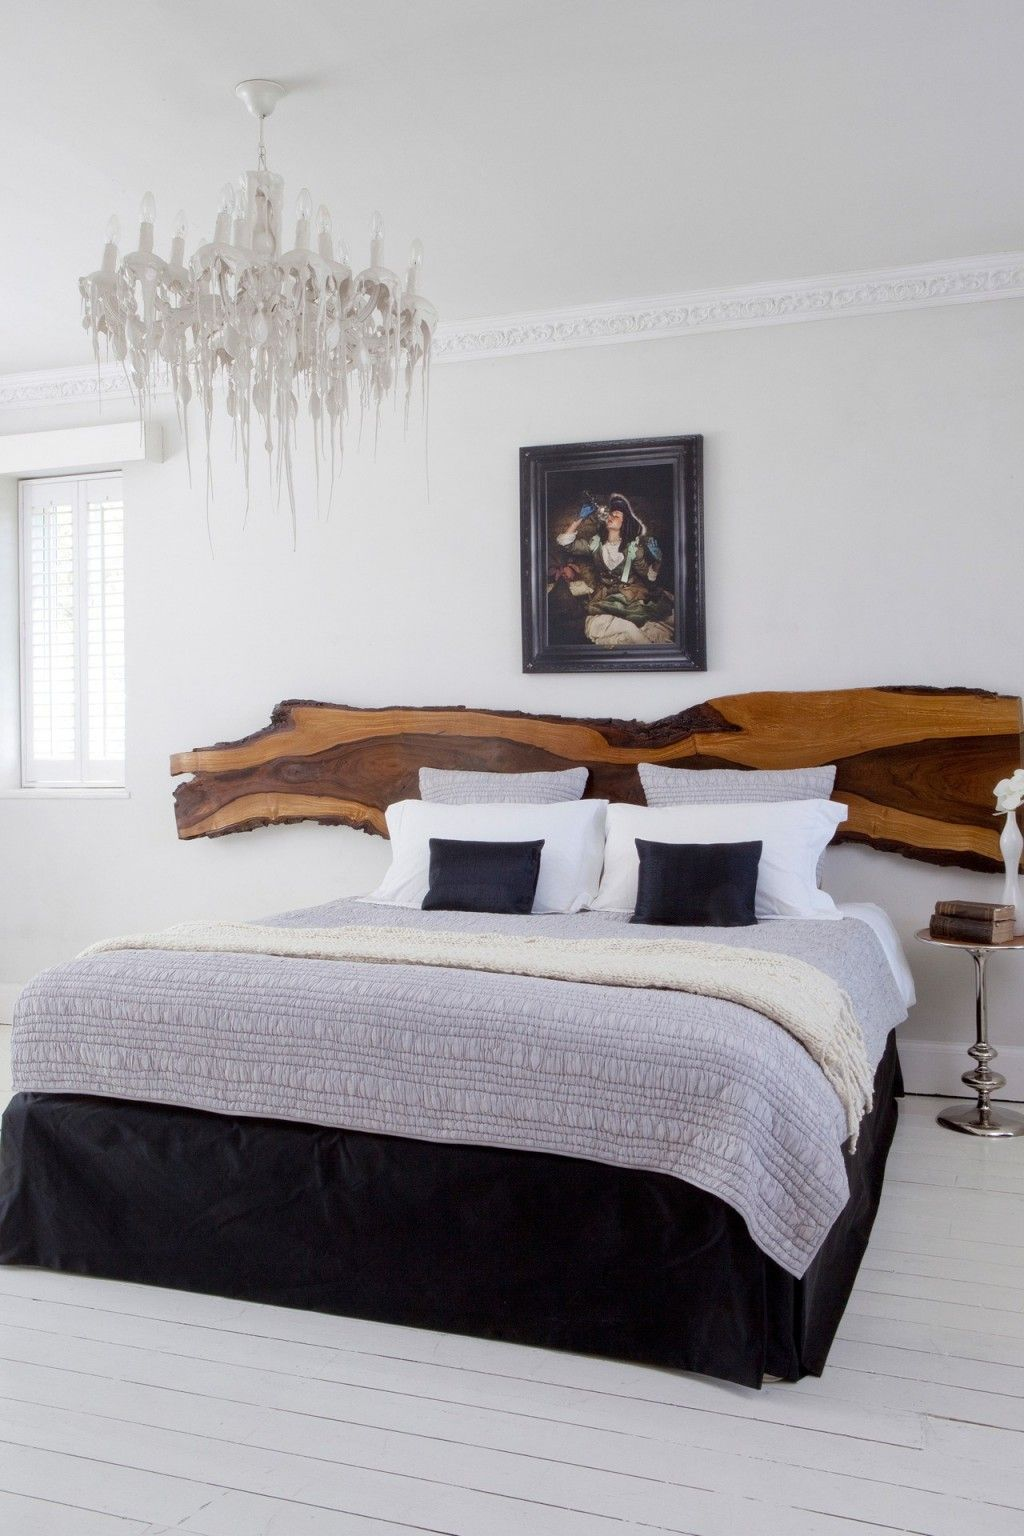 Creative Headboards With Natural Wooden Headboard Modern Master Bed And Vintage Wall Hanging Design For Solutions